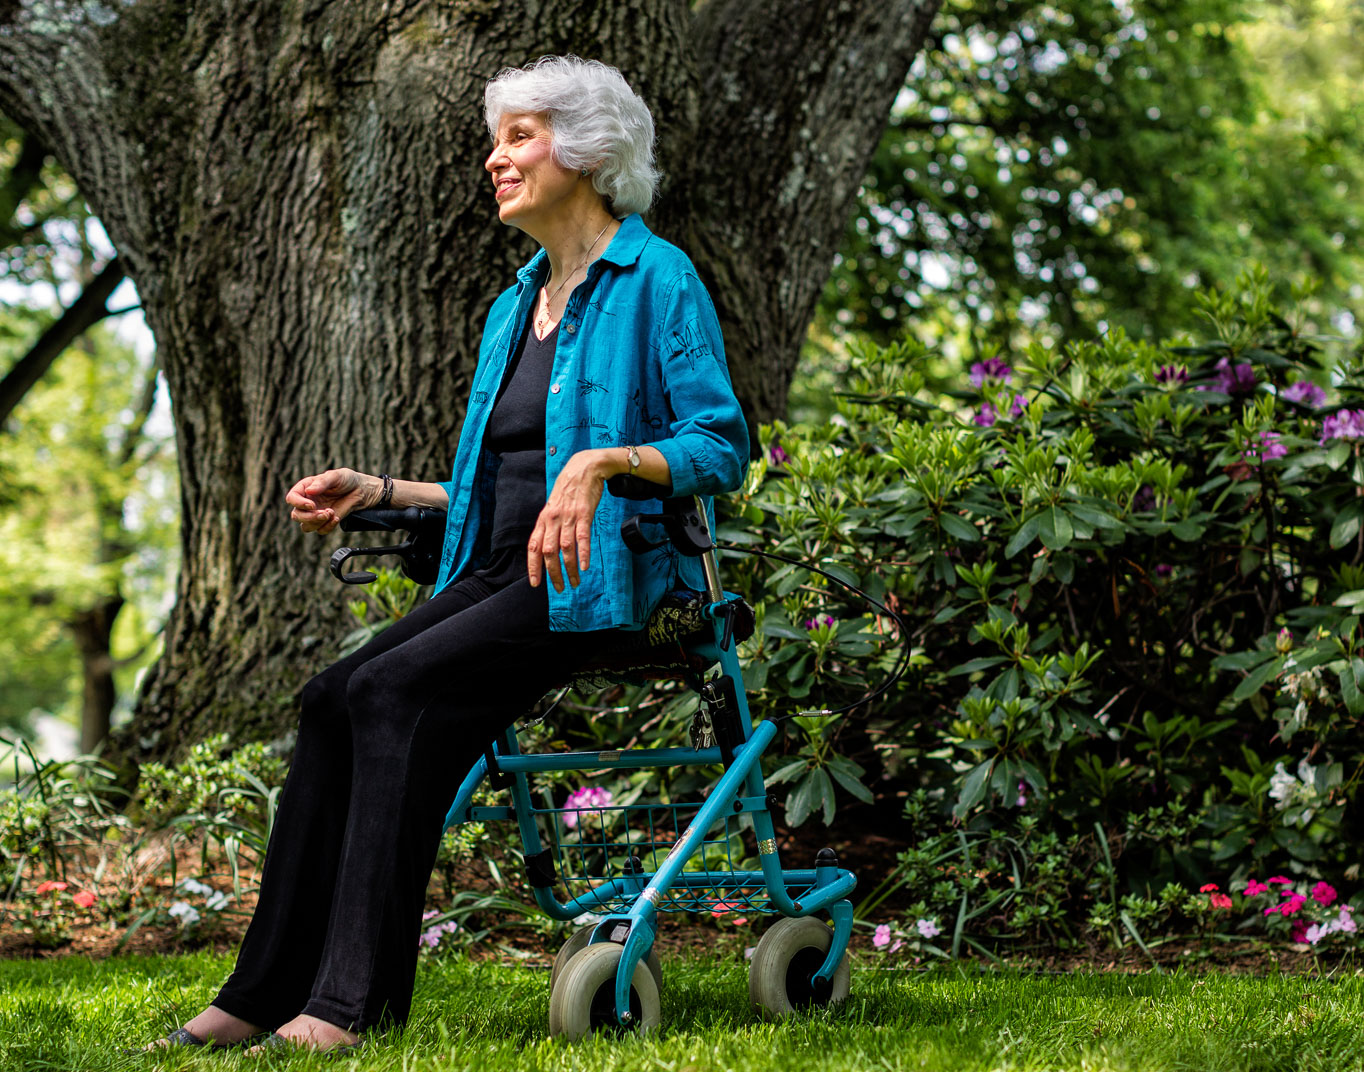 Connecticut older woman with Multiple Sclerosis meditates in garden next to large tree